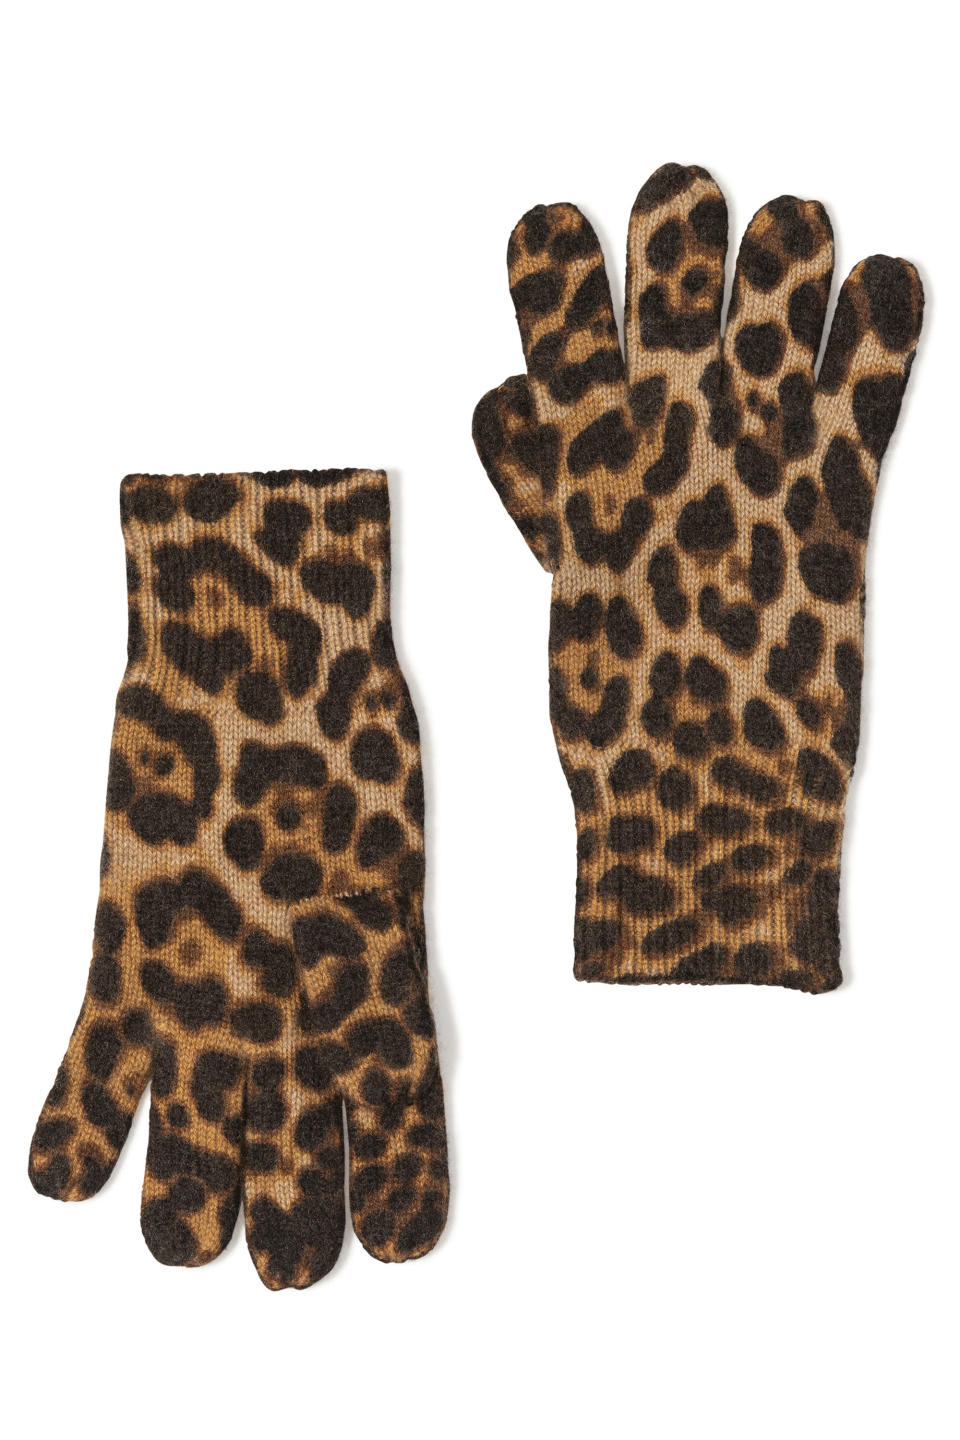 This image shows a pair of cashmere animal print gloves from Amicale. (Amicale via AP)